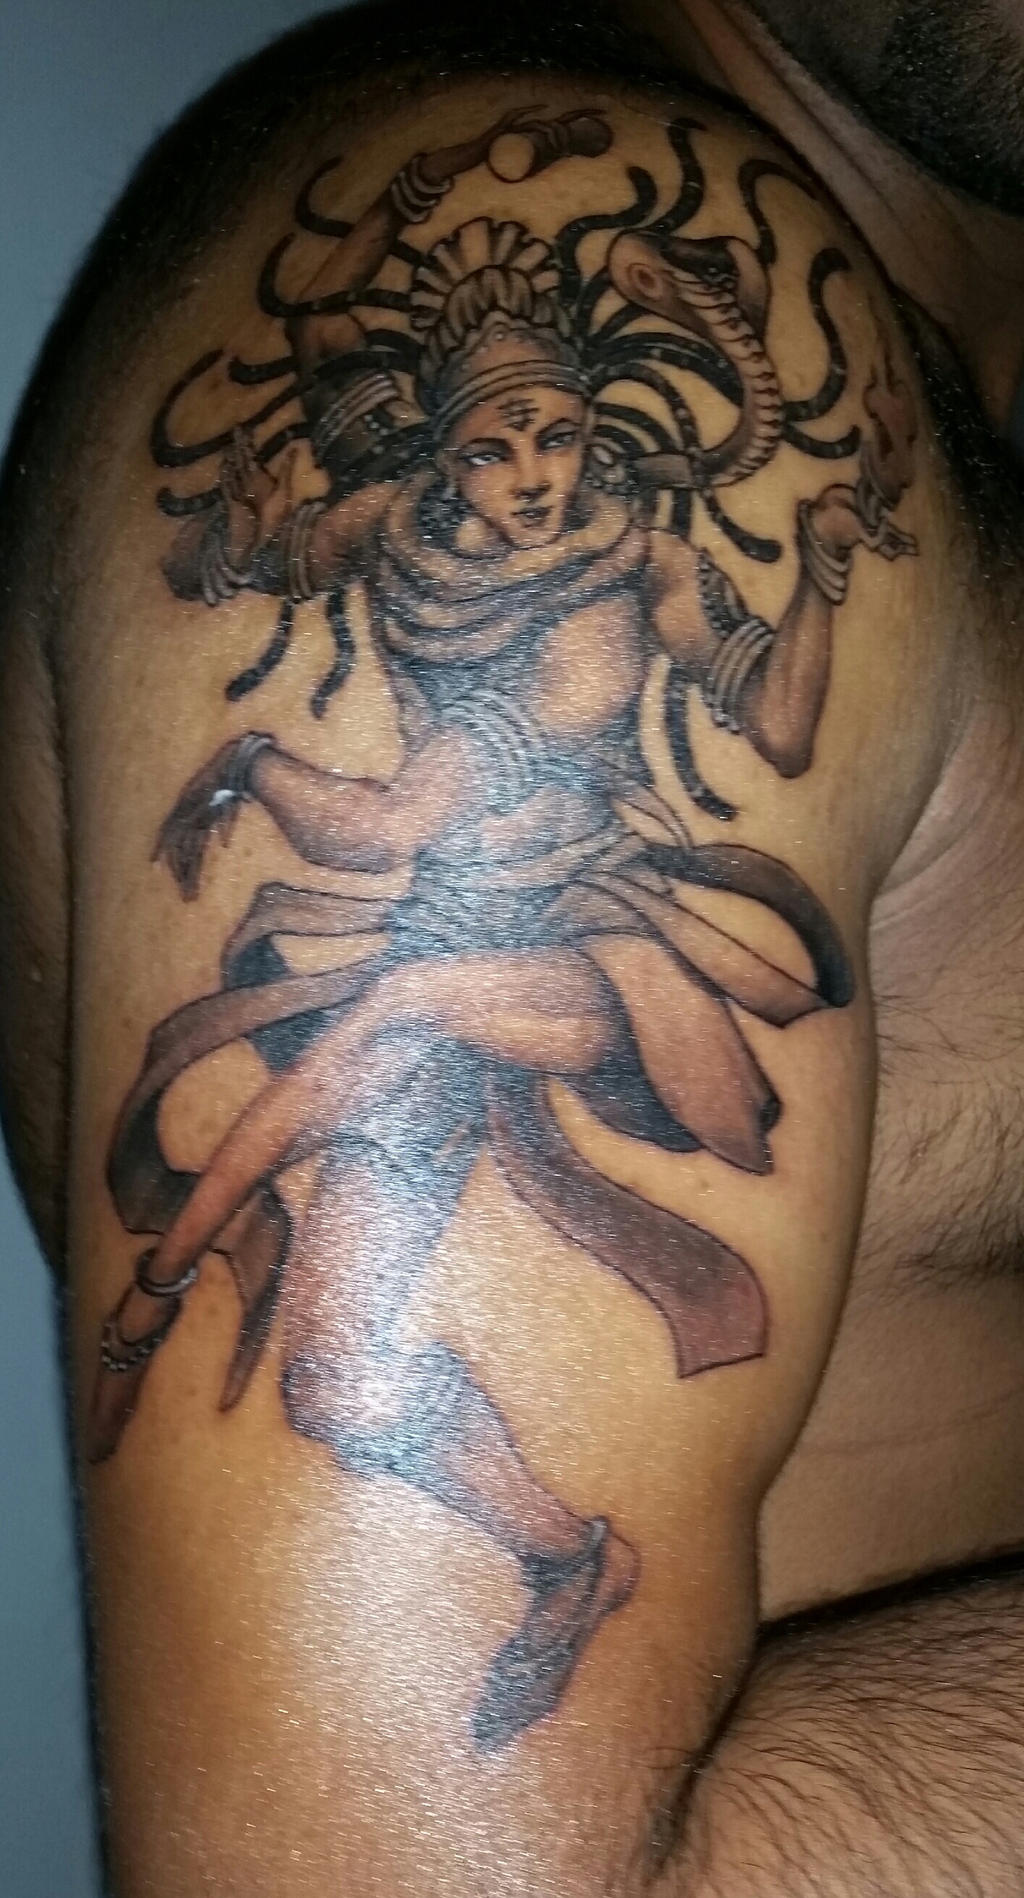 Tattoo Designs of Lord Shiva Angry images